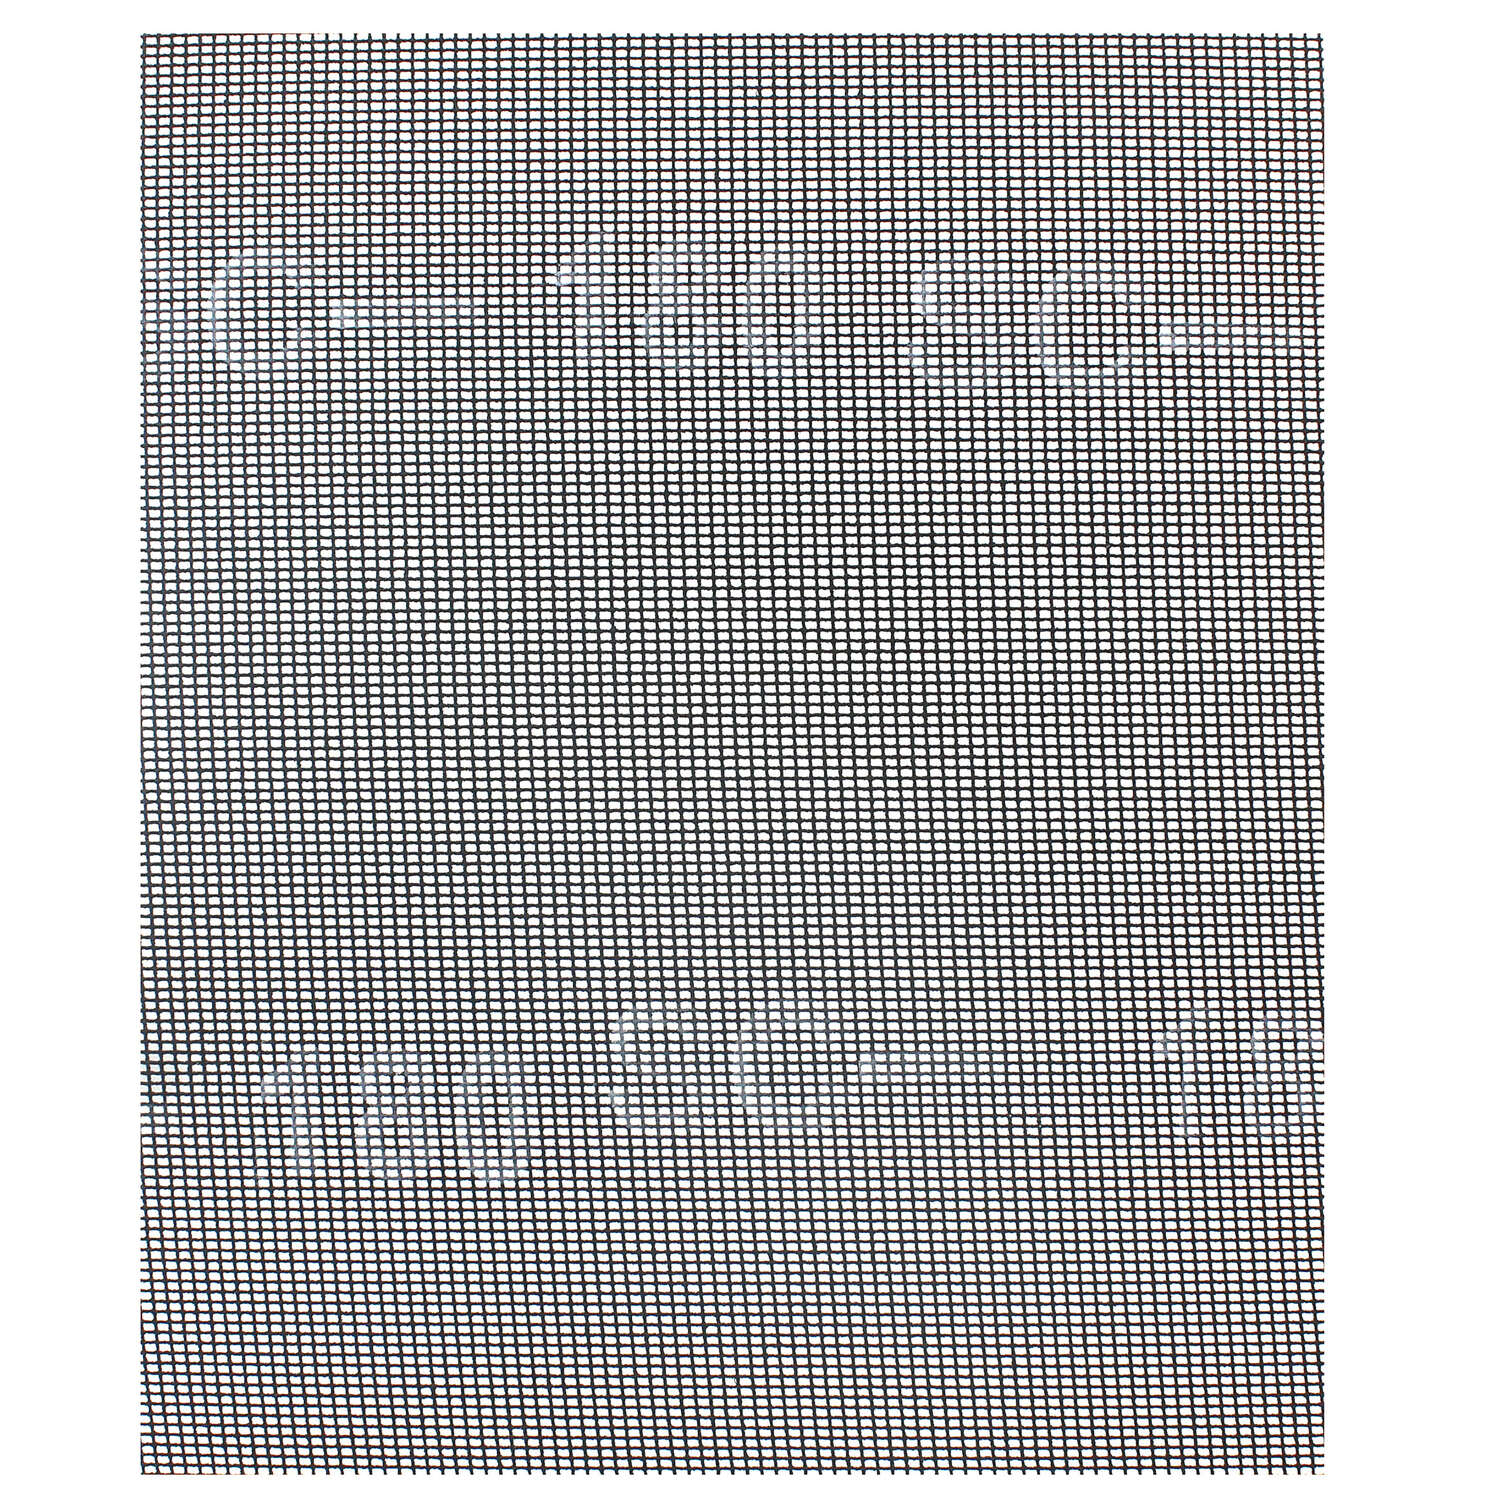 Gator  9 in. W x 11 in. L 180 Grit Silicon Carbide  Drywall Sanding Screen  1 pc. Very Fine